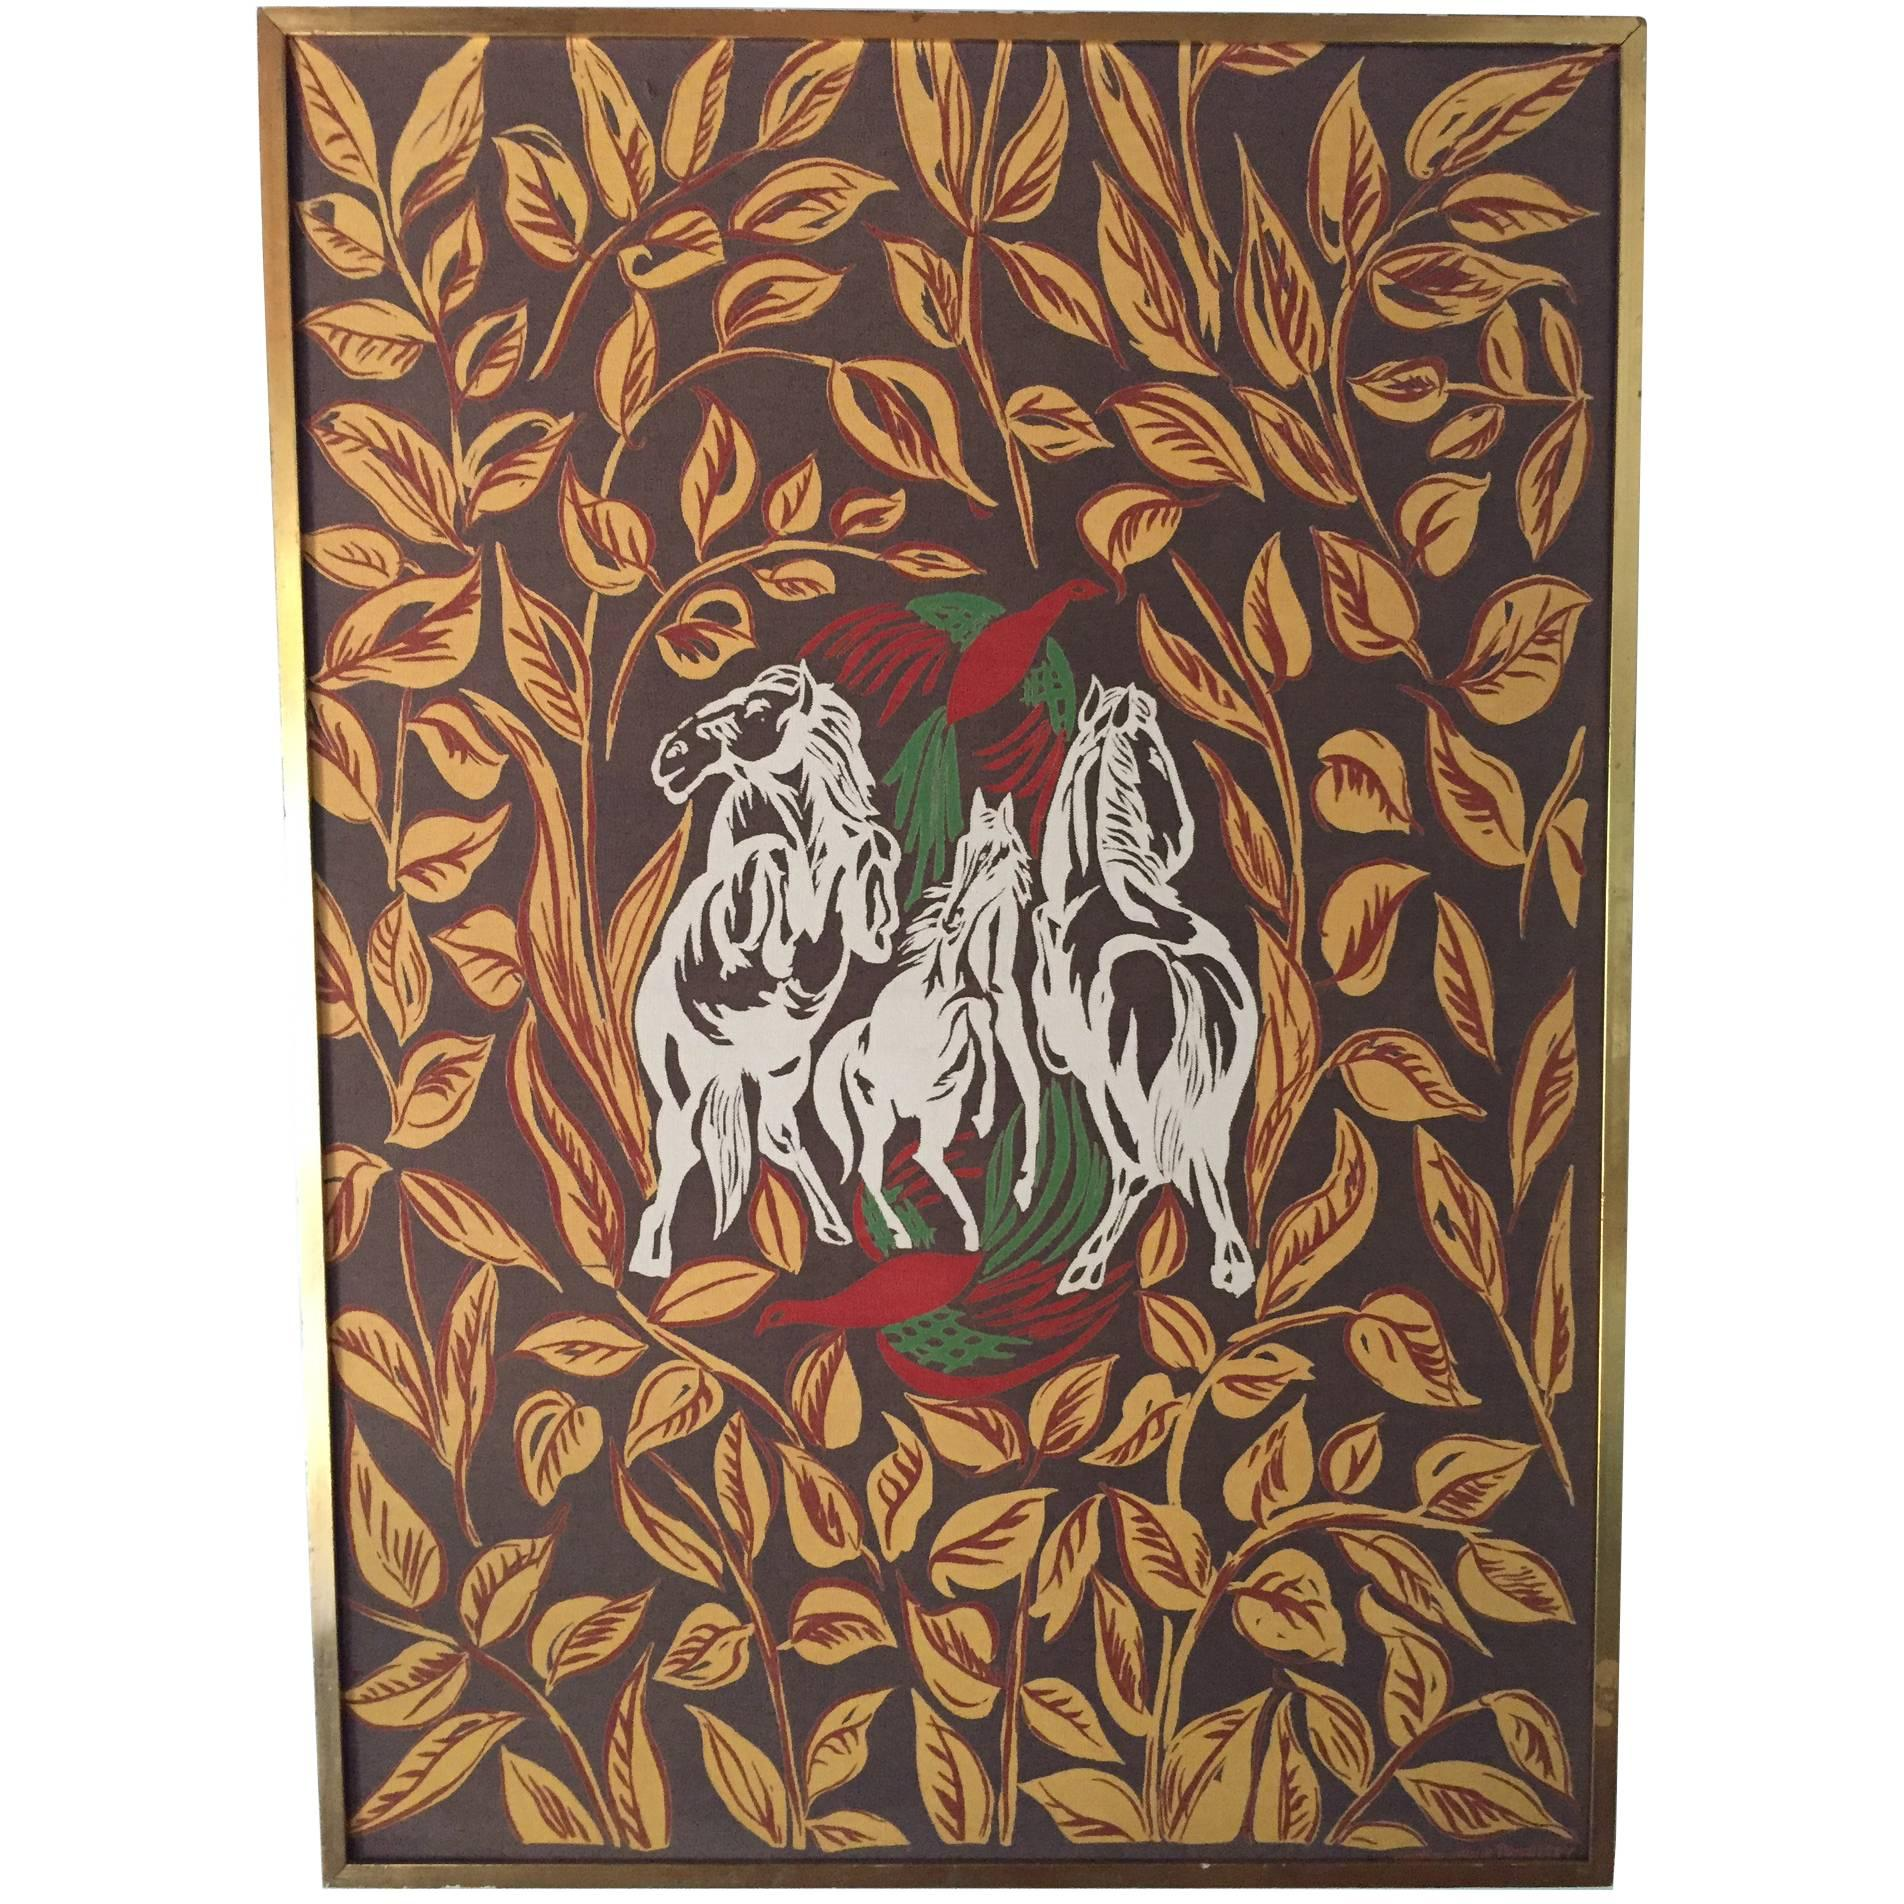 Amazing Raoul Dufy Aubusson Tapestry--Signed